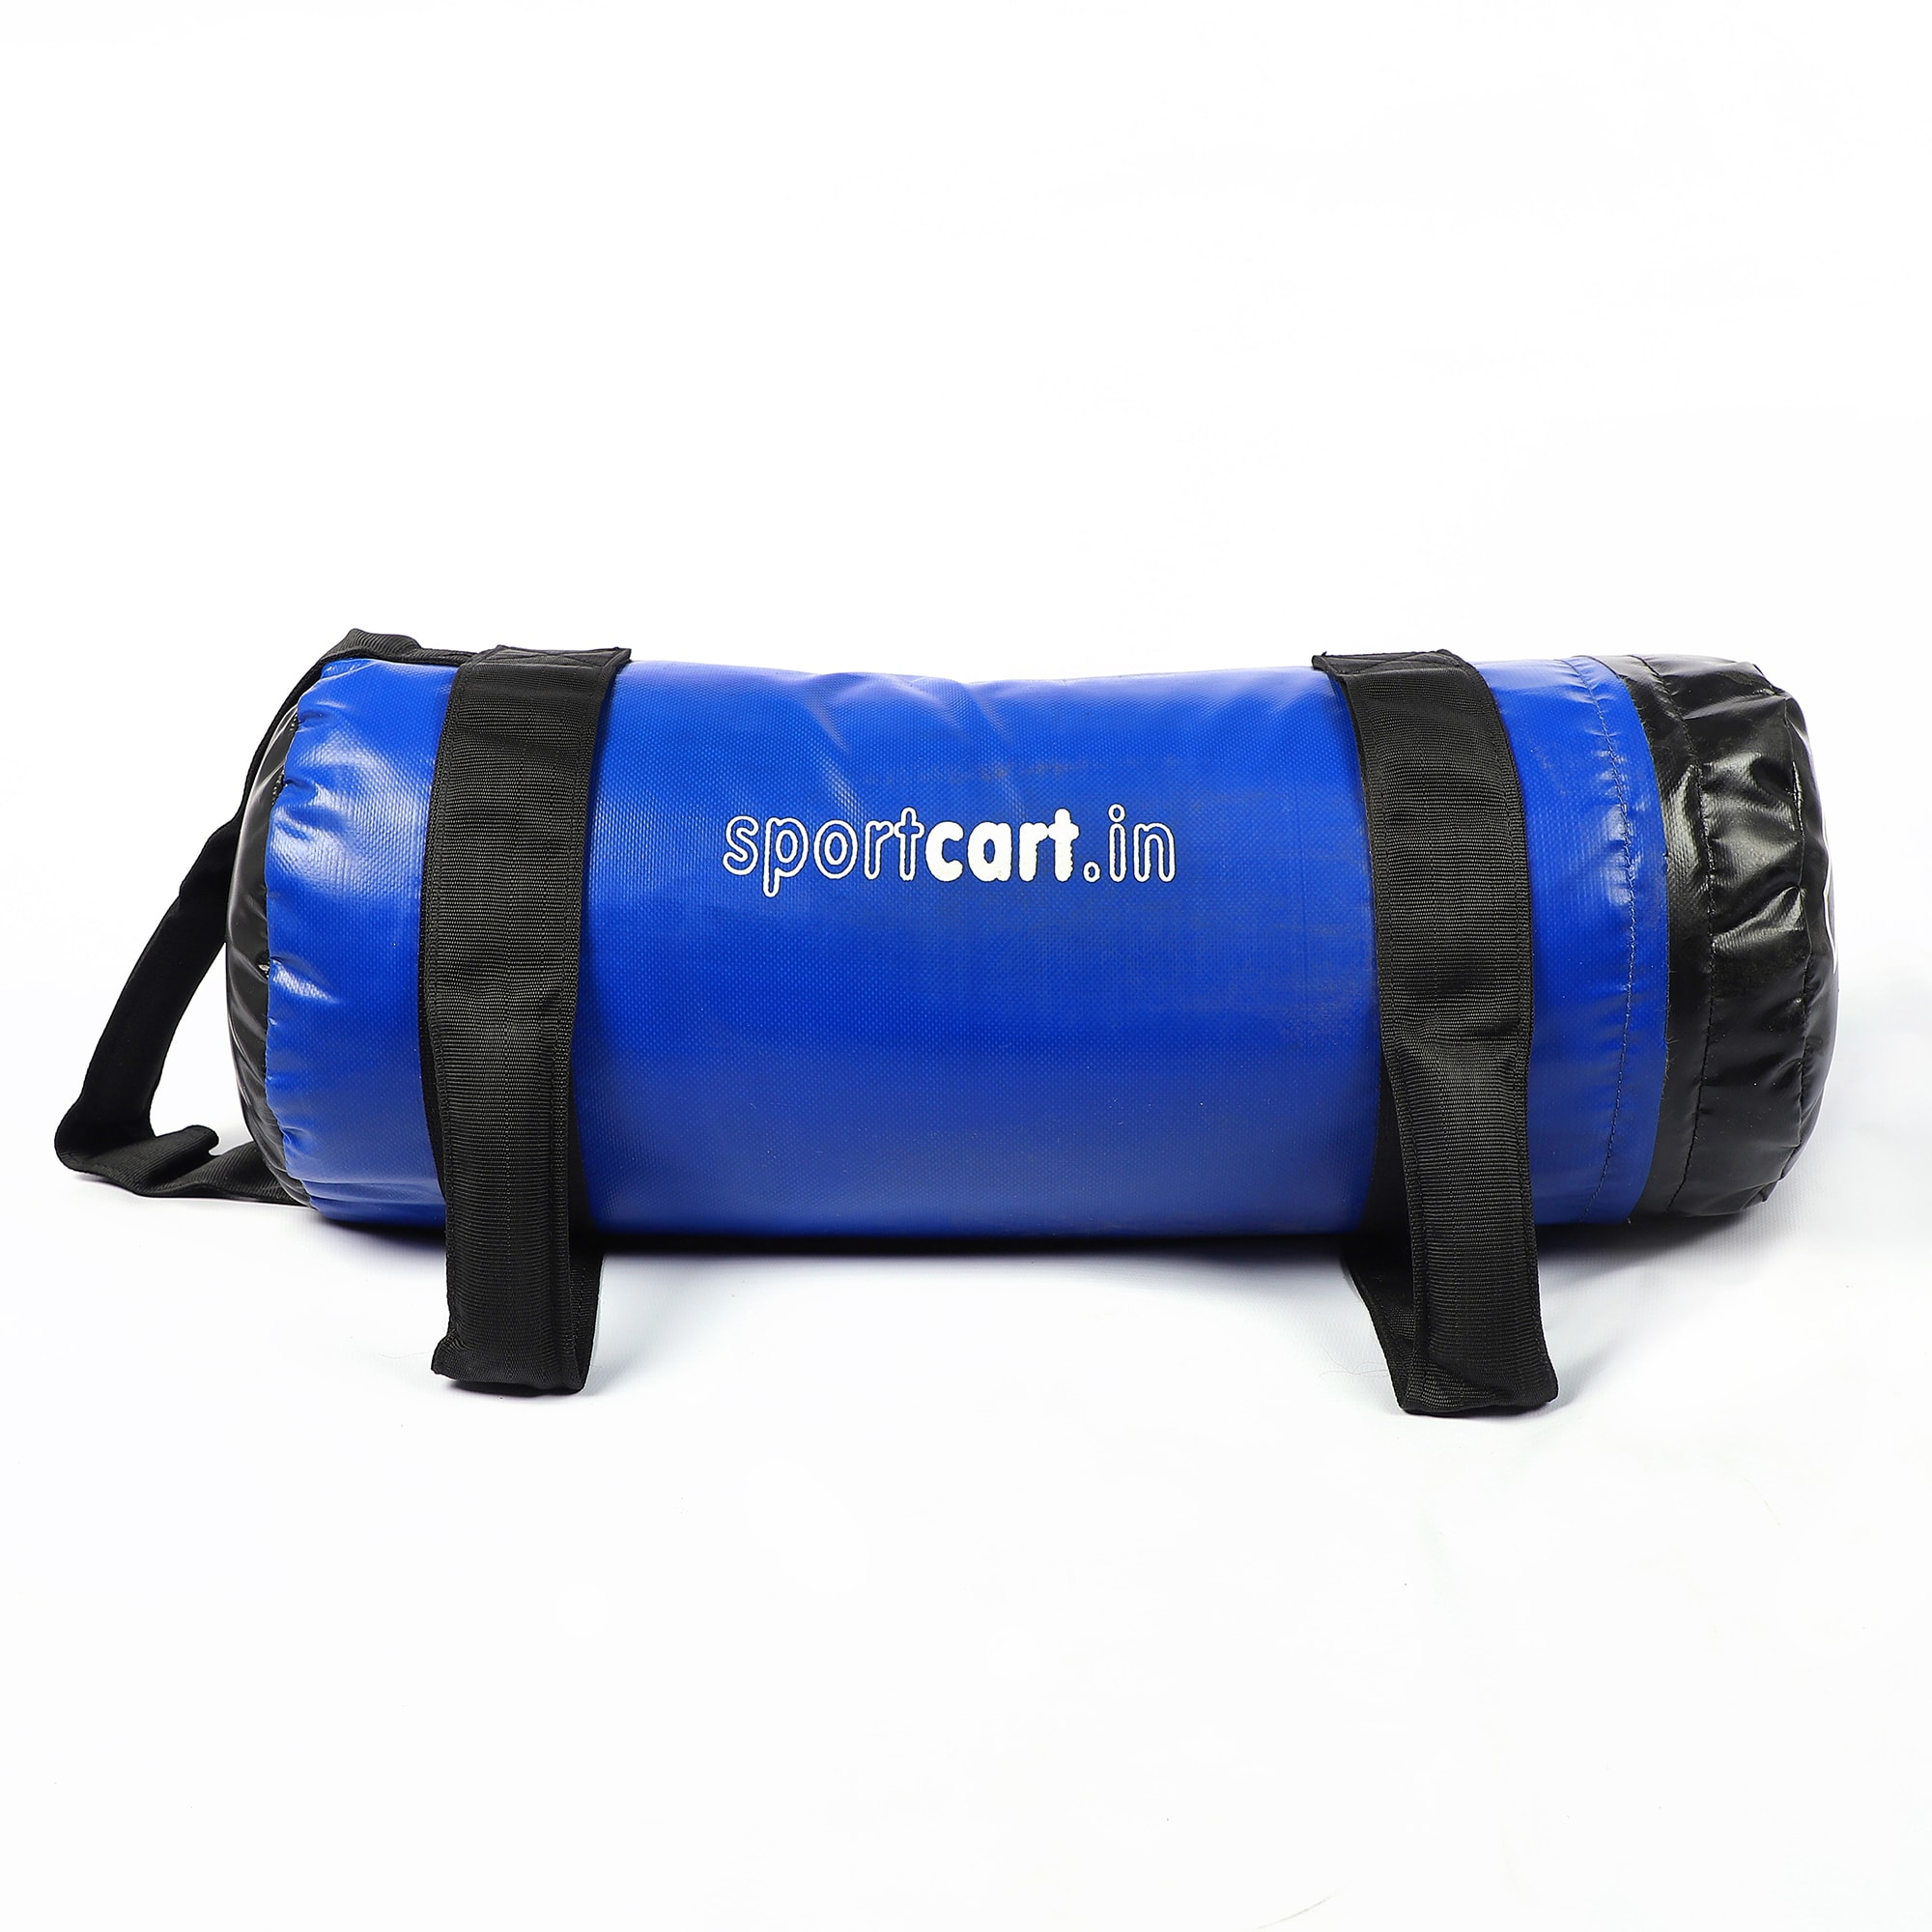 Sportcart.in Sand / Strength Bag - 15 Kg